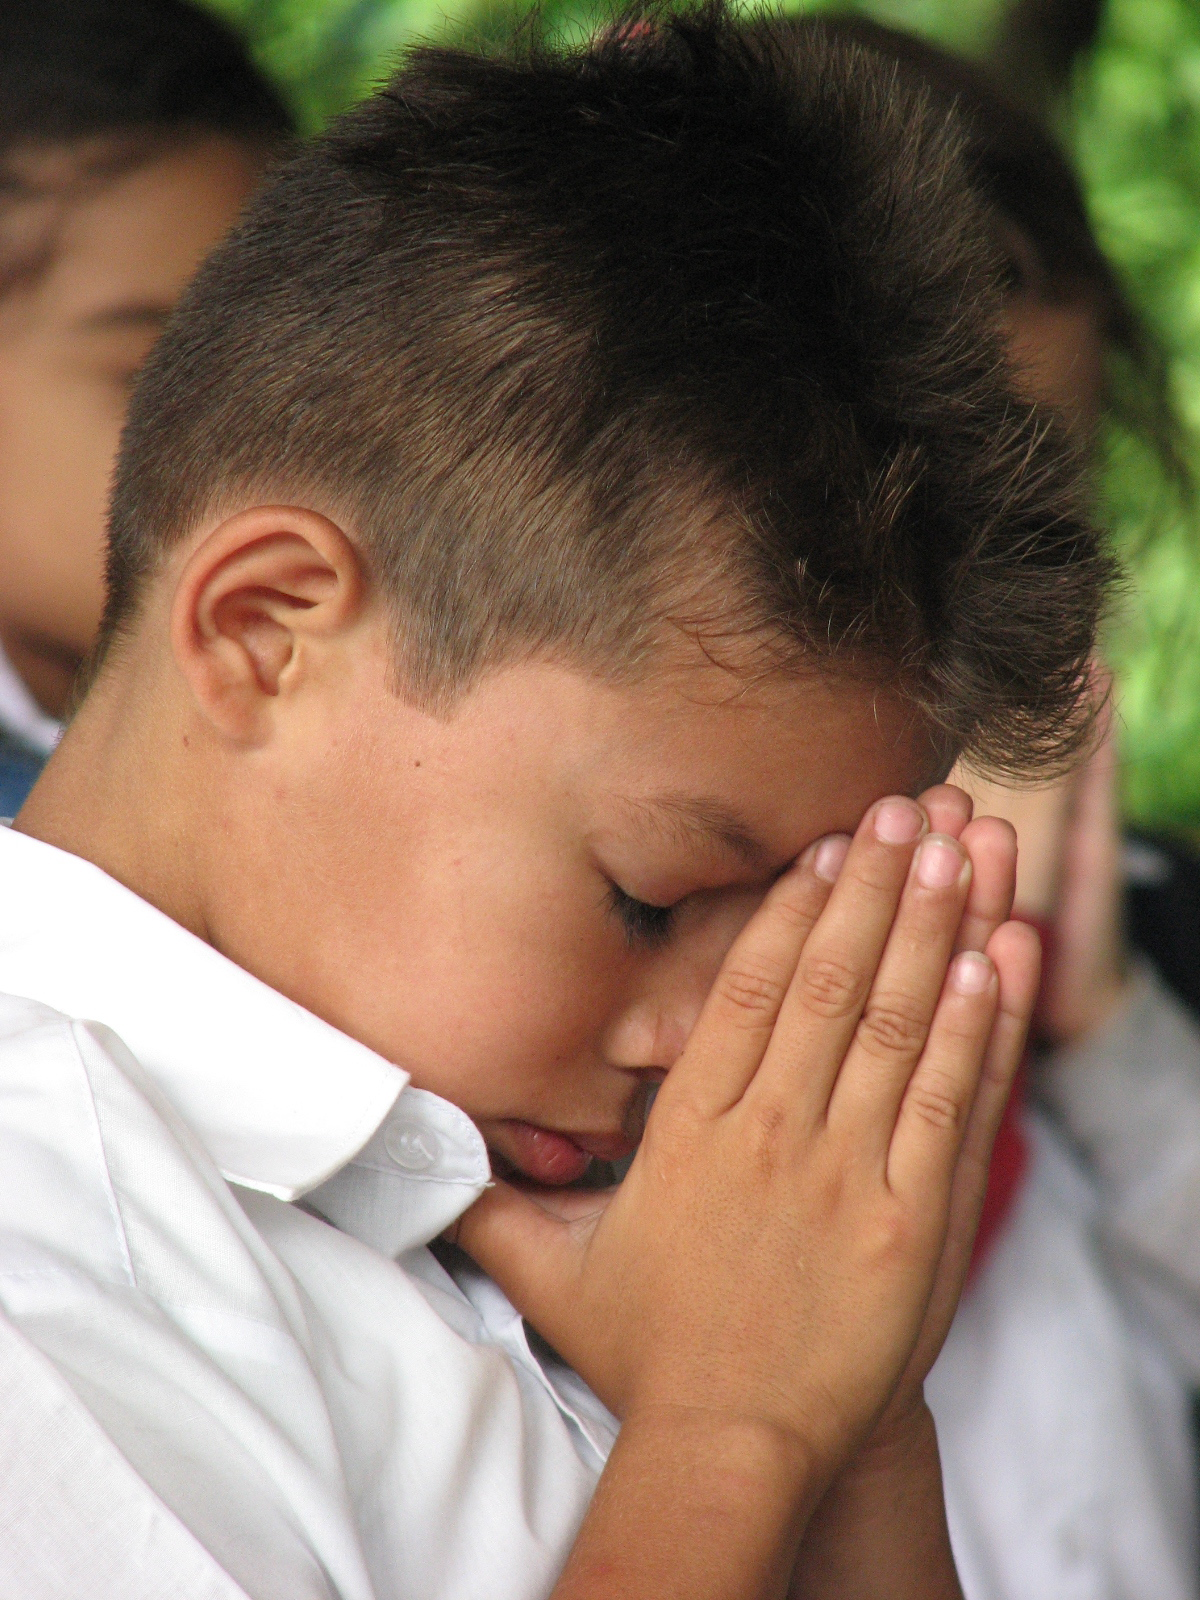 Boy praying photo.JPG